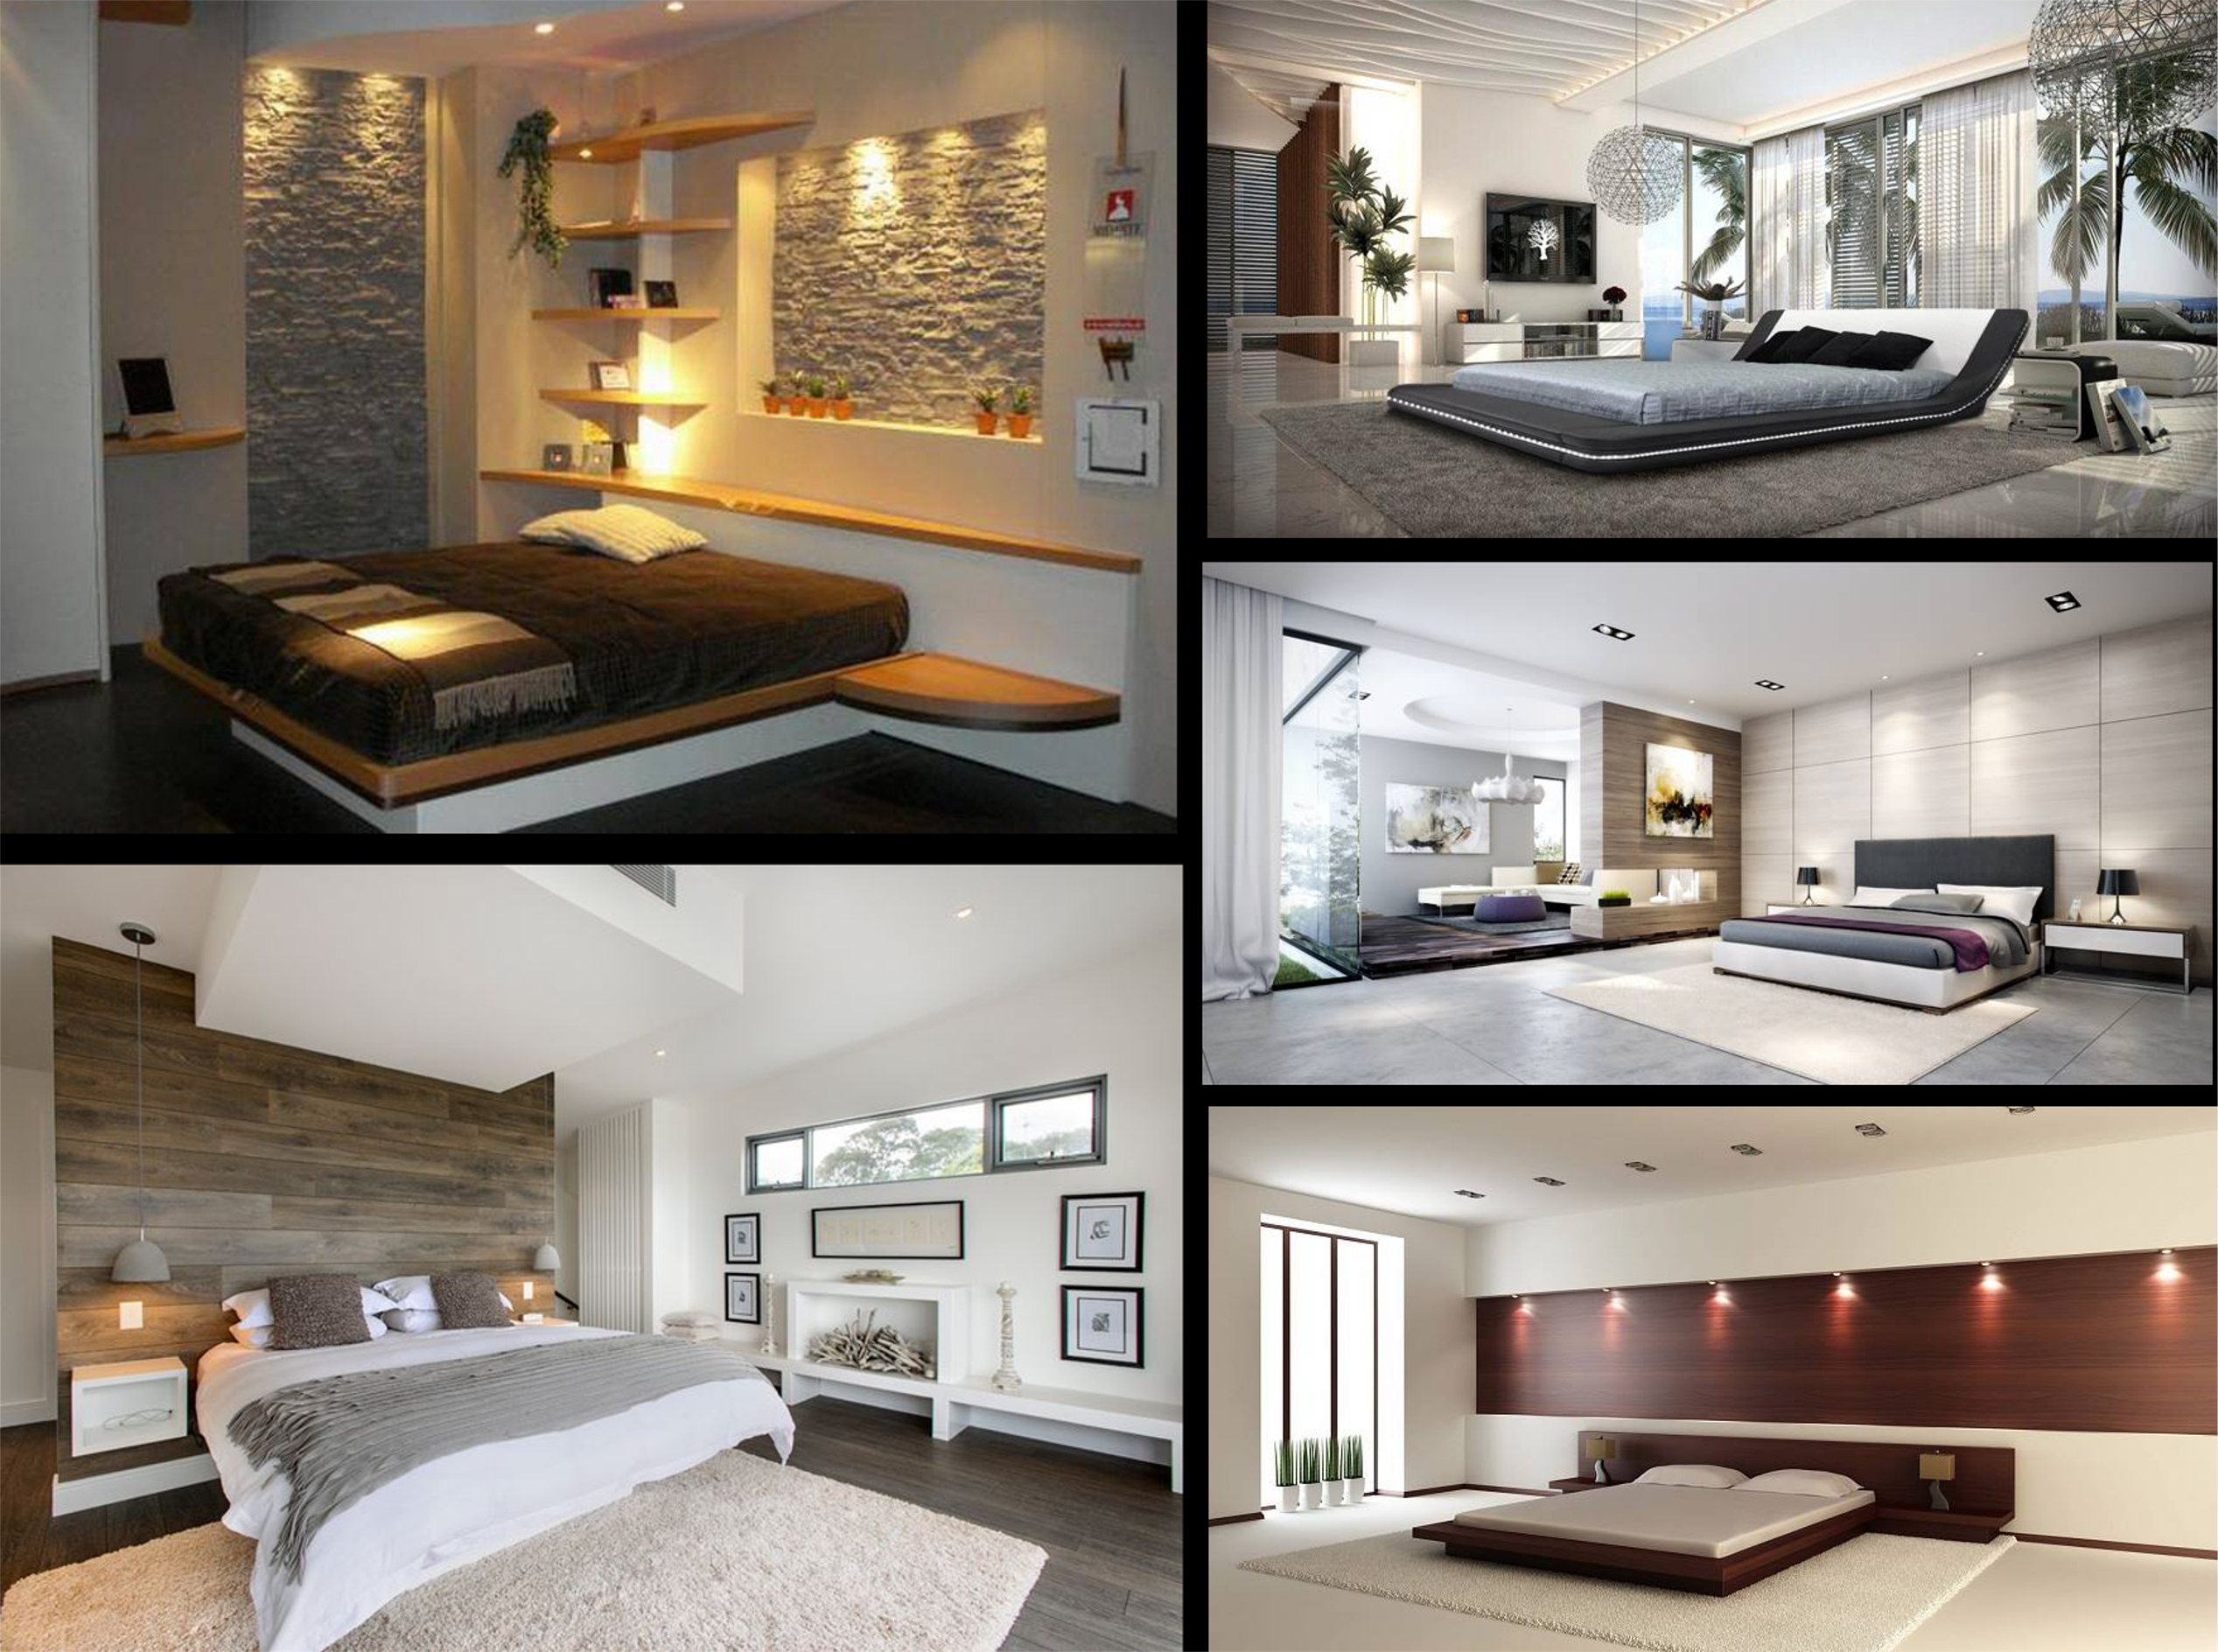 Exquisite Modern bedroom Ideas For Your Personal Sanctuary ᴷᴬ (ArtPeople Gallery)